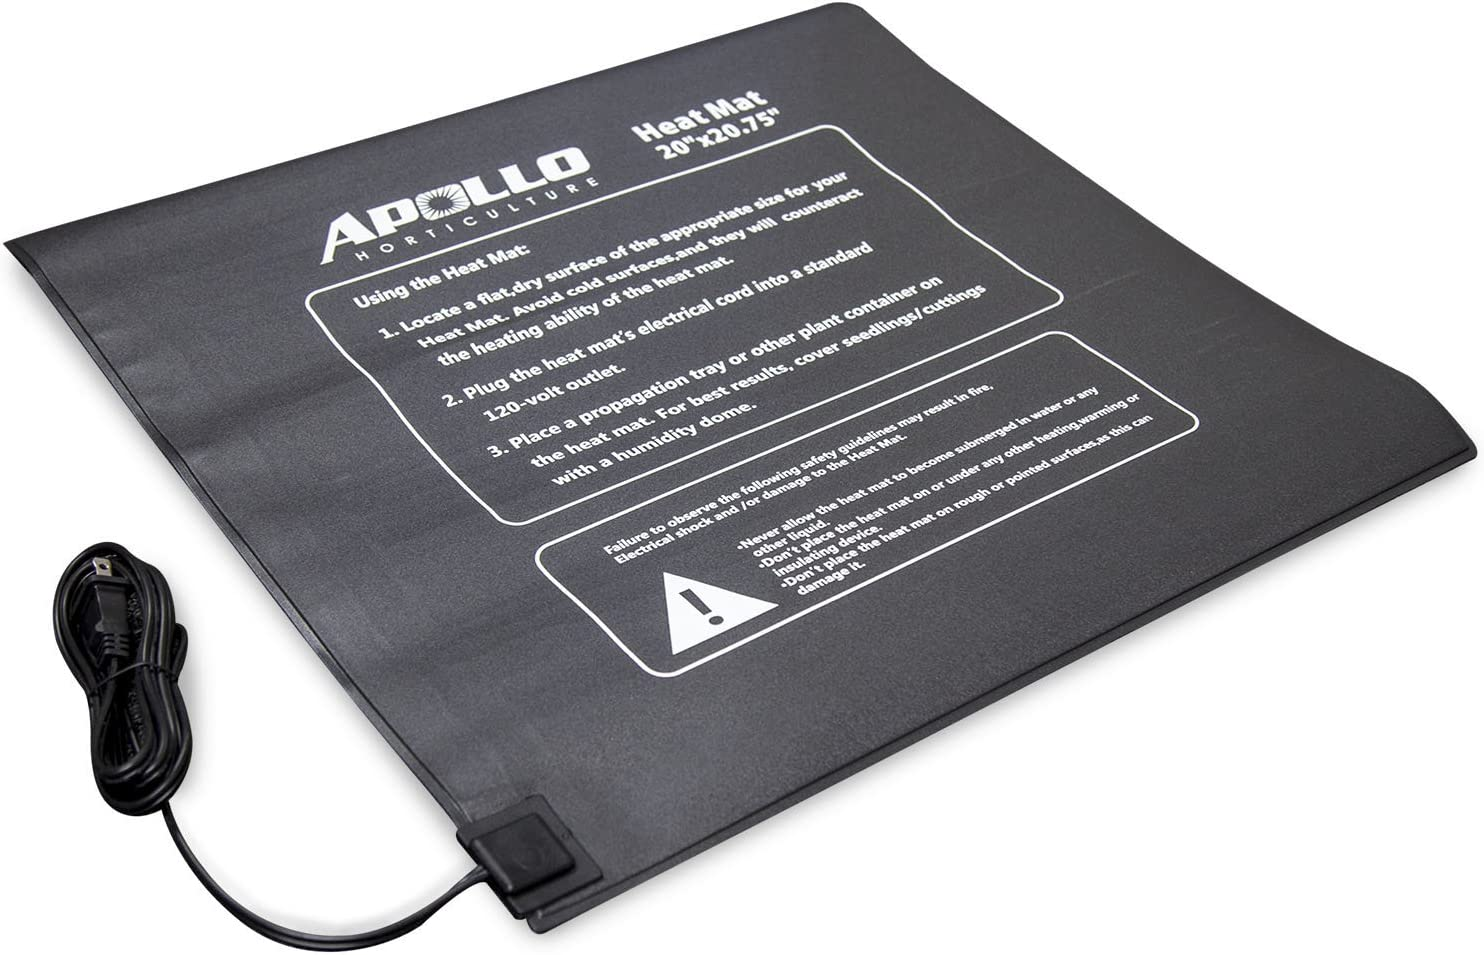 Apollo Horticulture 20 x20.75 Seedling Heating Mat for Propagation and Cloning